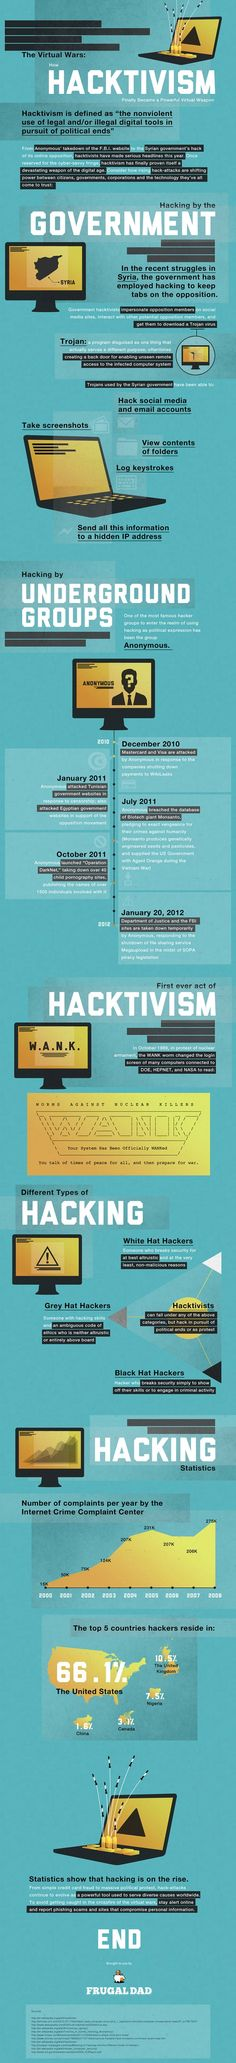 The Virtual Wars: How Hacktivism Finally Became a Powerful Virtual Weapon. A Brief History of Hacktivism